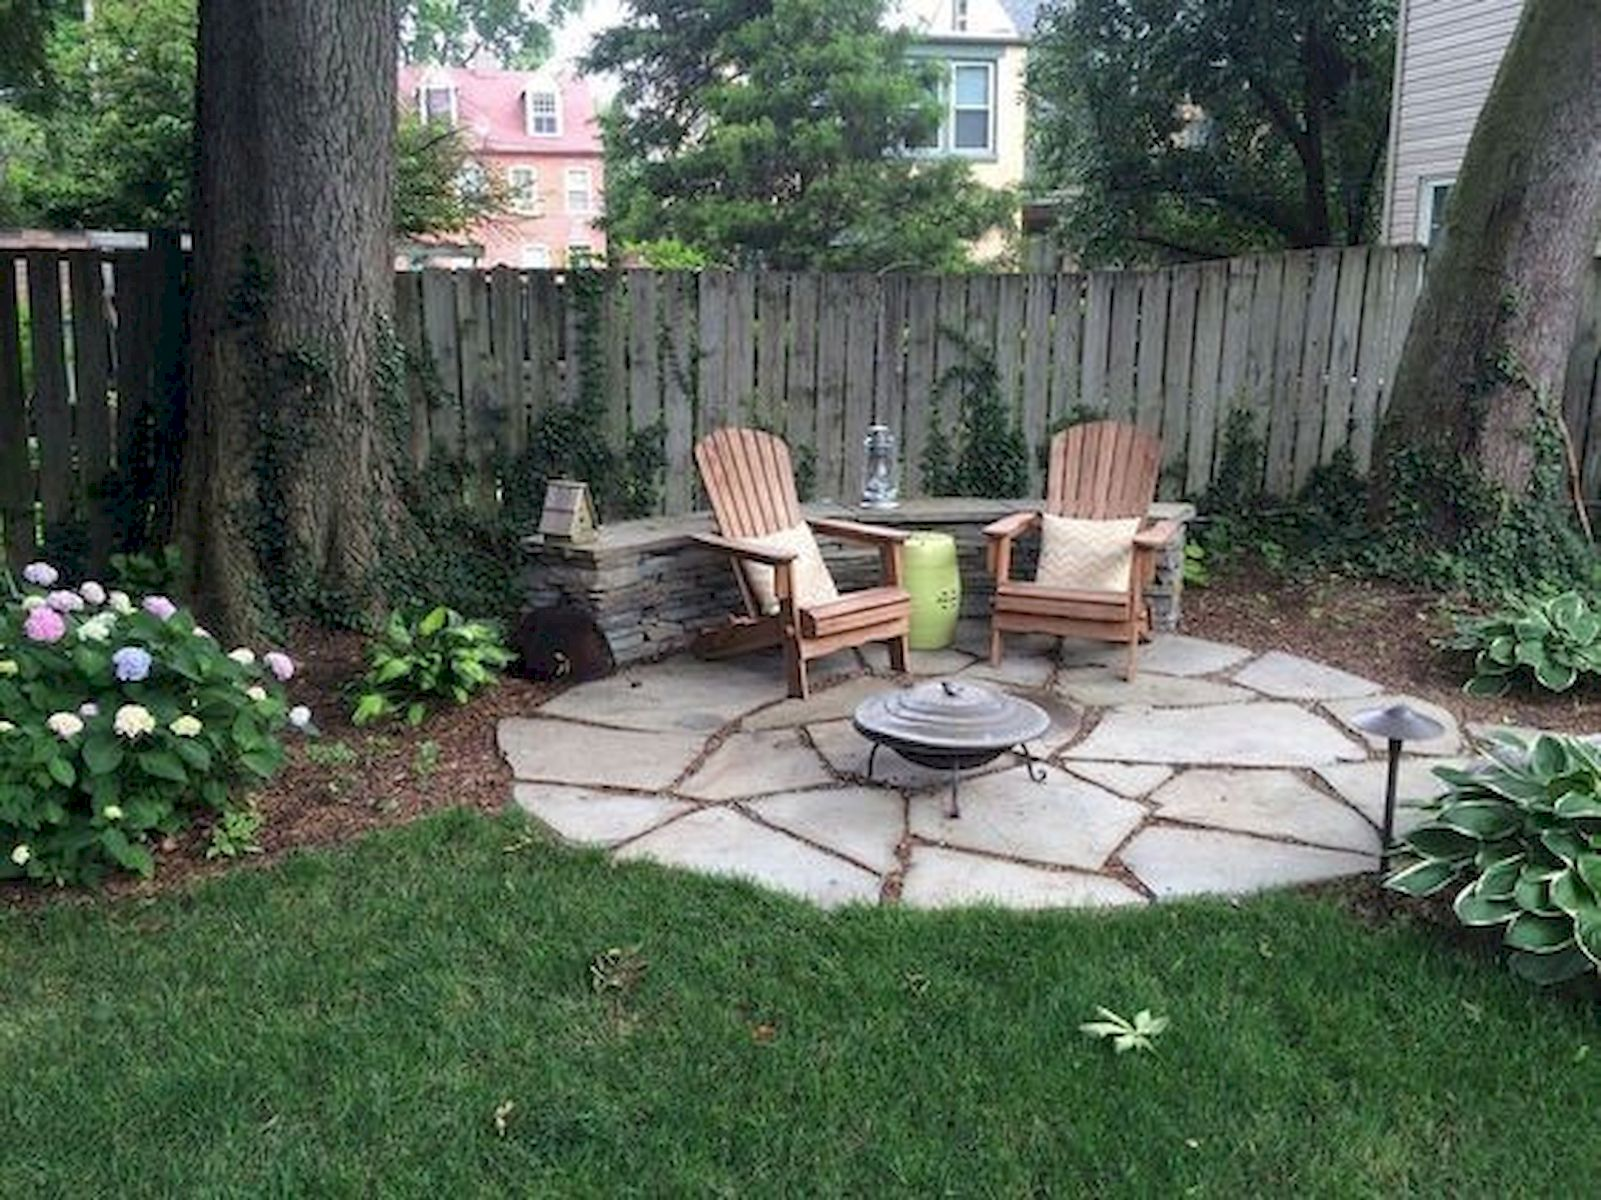 55 Beautiful Backyard Patio Ideas On A Budget - house8055.com on Beautiful Backyard Ideas  id=91408